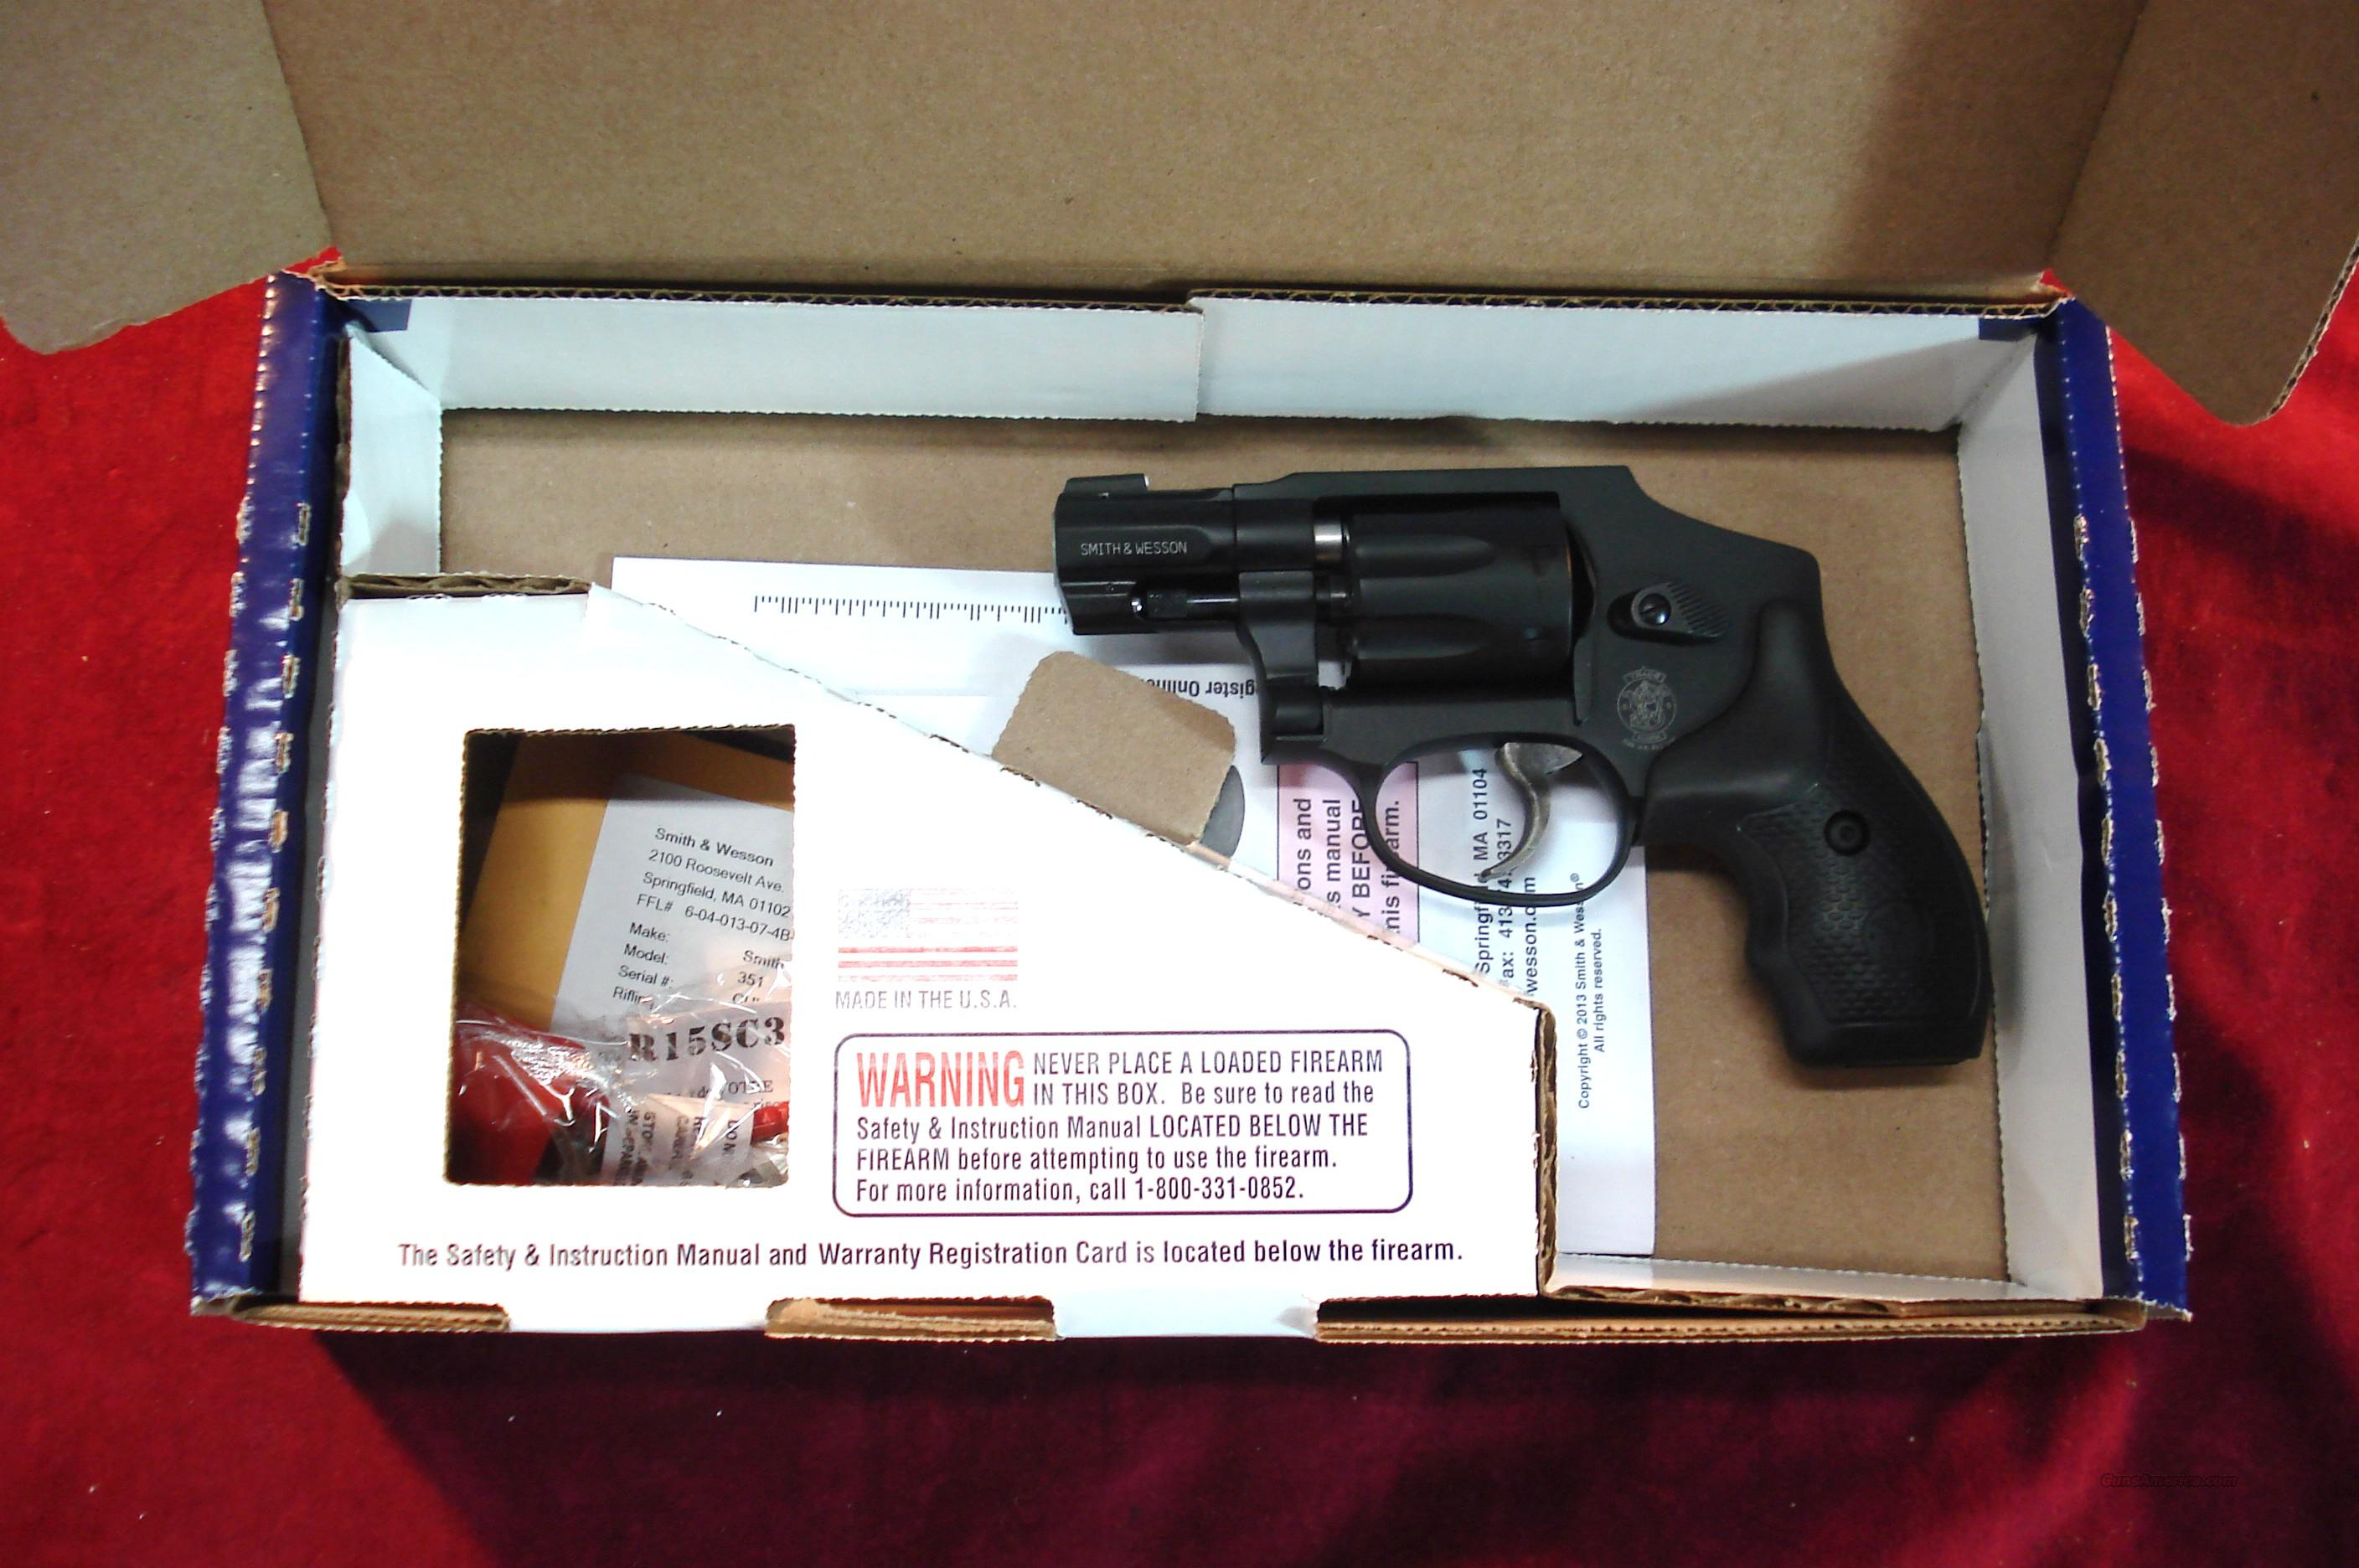 SMITH AND WESSON MODEL 351, 7 SHOT 22 MAGNUM REVOLVER, BLACK NEW  Guns > Pistols > Smith & Wesson Revolvers > Pocket Pistols